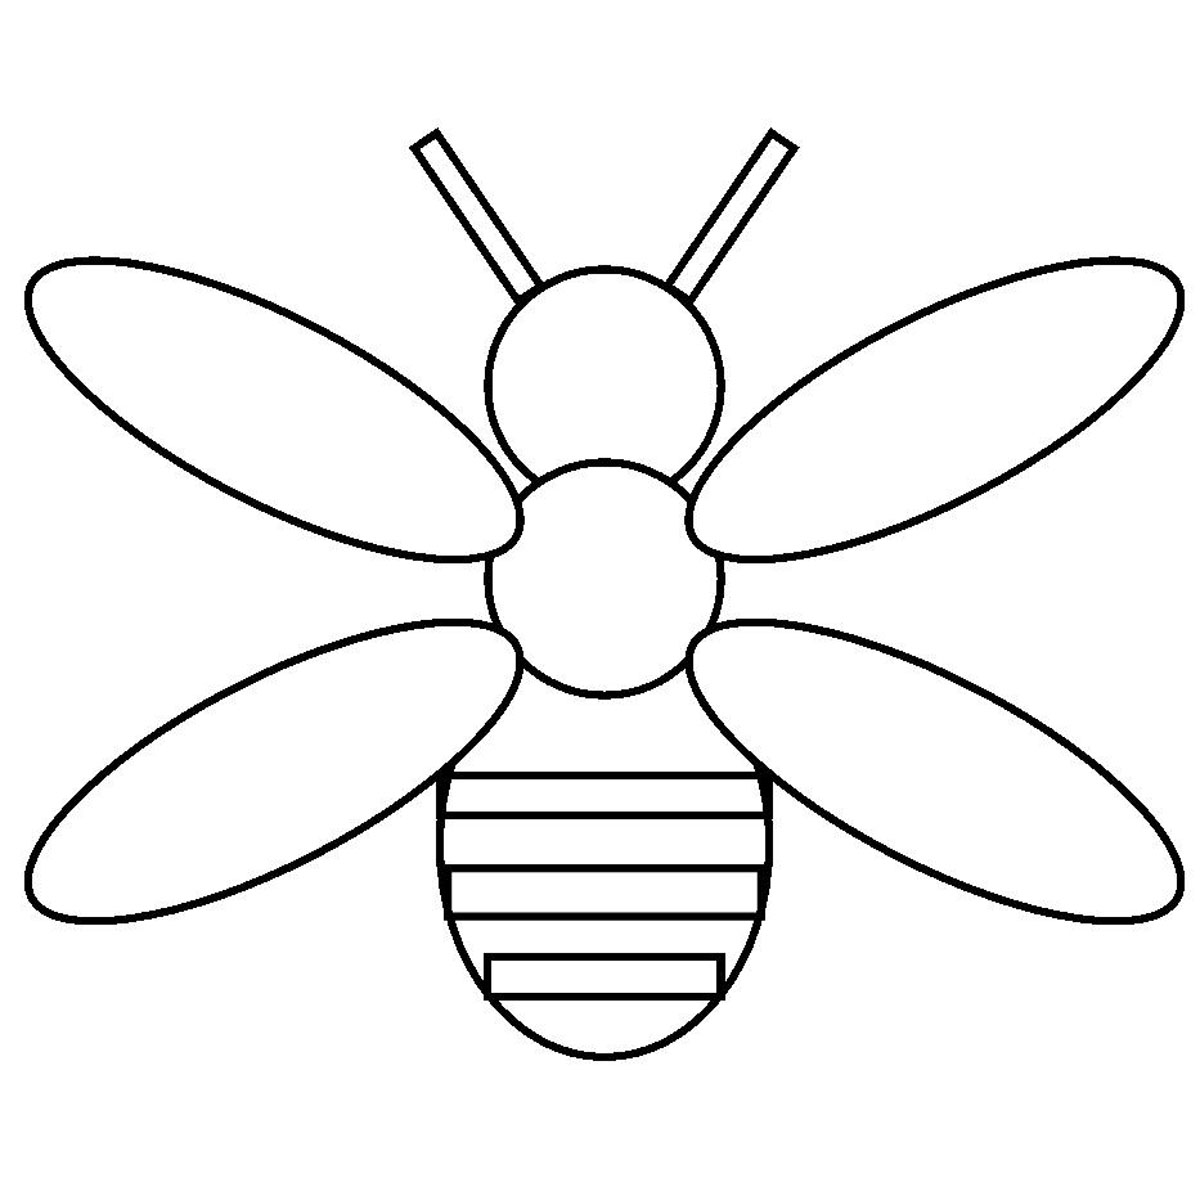 071abbf4cd8f638659f289042fcf2140 additionally 74259212b1aaf28fa5d5c3b3e4a96e0b together with coloring page outline insects firefly besides jL 7R8ia moreover 9c4x9qRpi besides  together with firefly insect coloring pages together with dT9ka7aT7 furthermore firefly besides  further Dragonfly Coloring Pages. on preschool firefly coloring pages